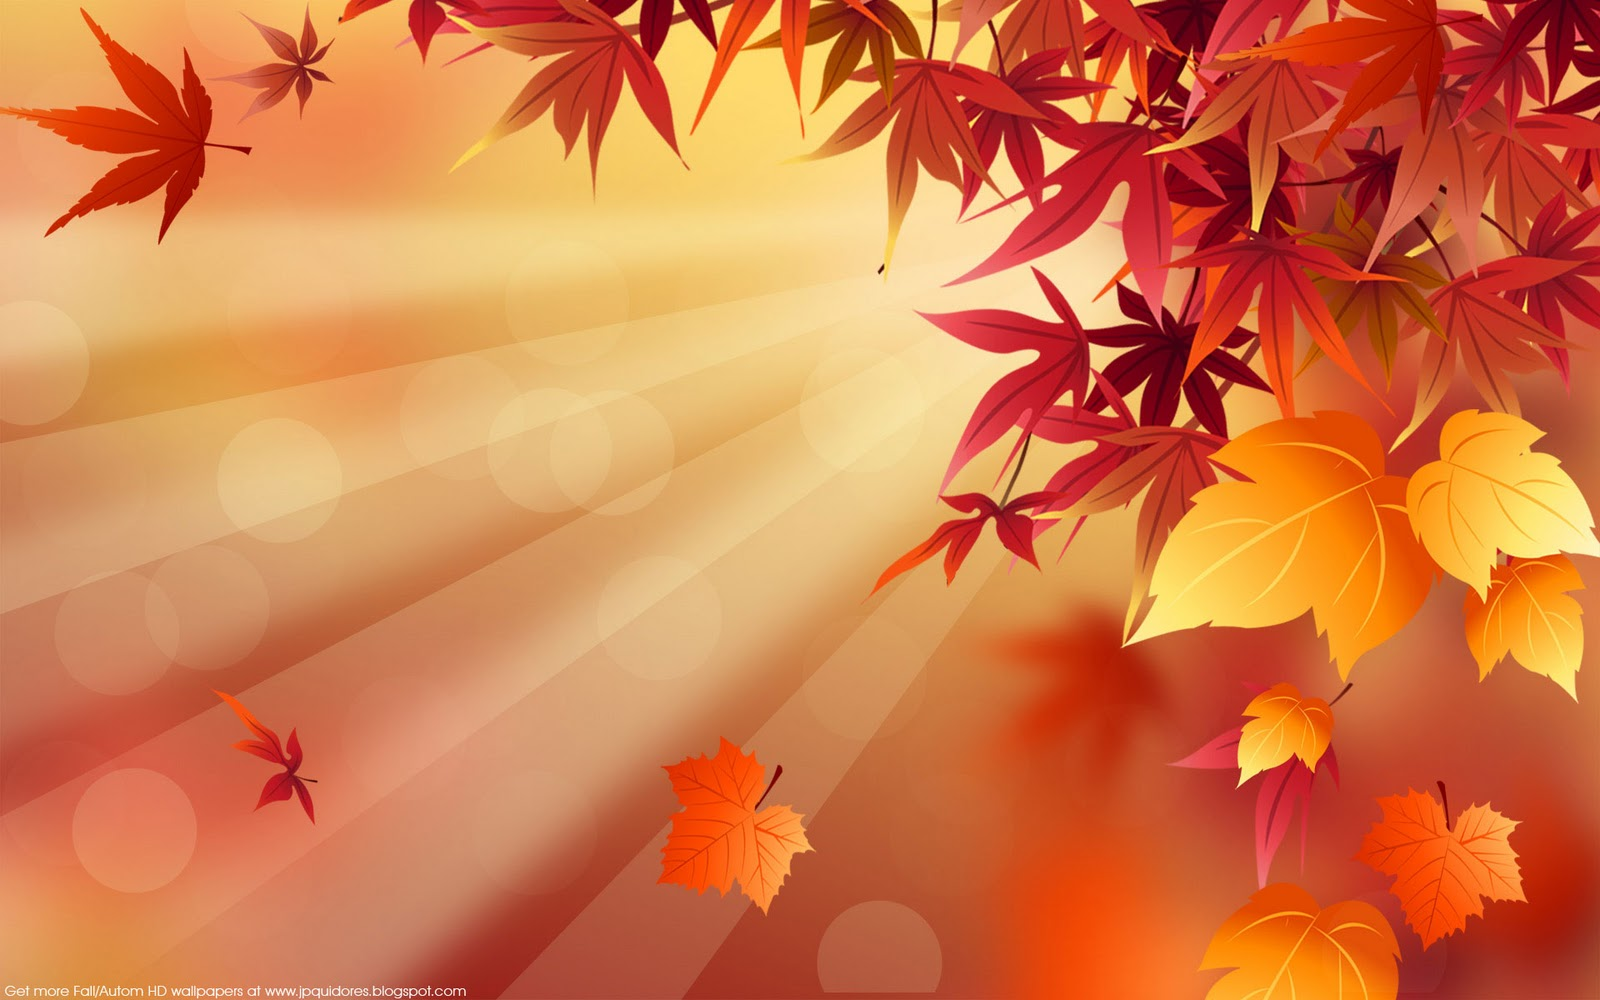 Kids Under 7 Fall Wallpapers for Desktop 1600x1000